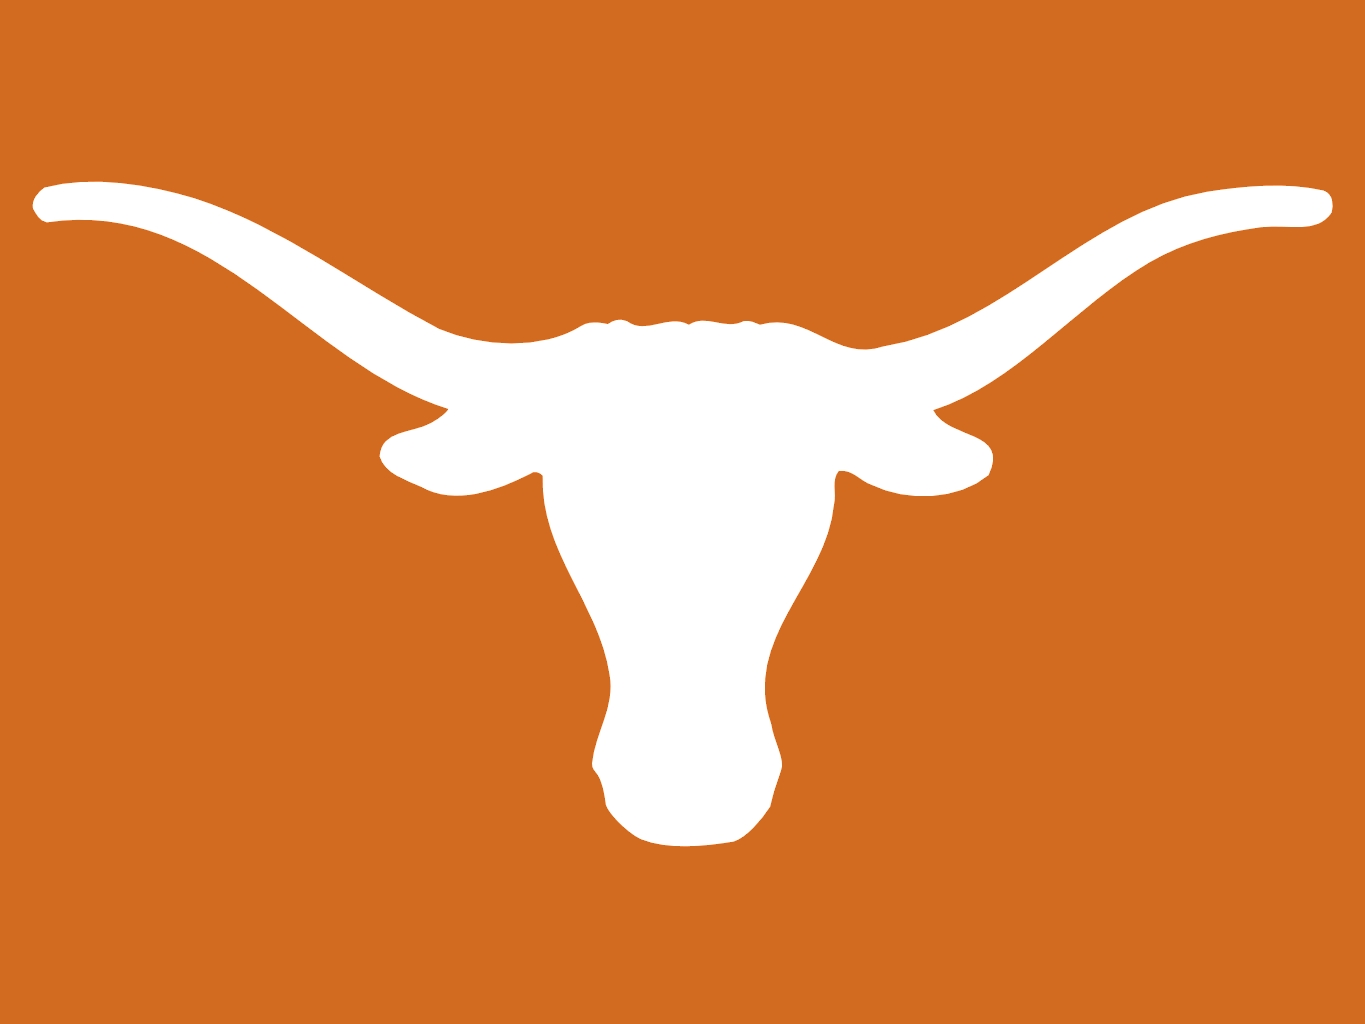 Texas Longhorns Logo Clipart - Clipart Kid